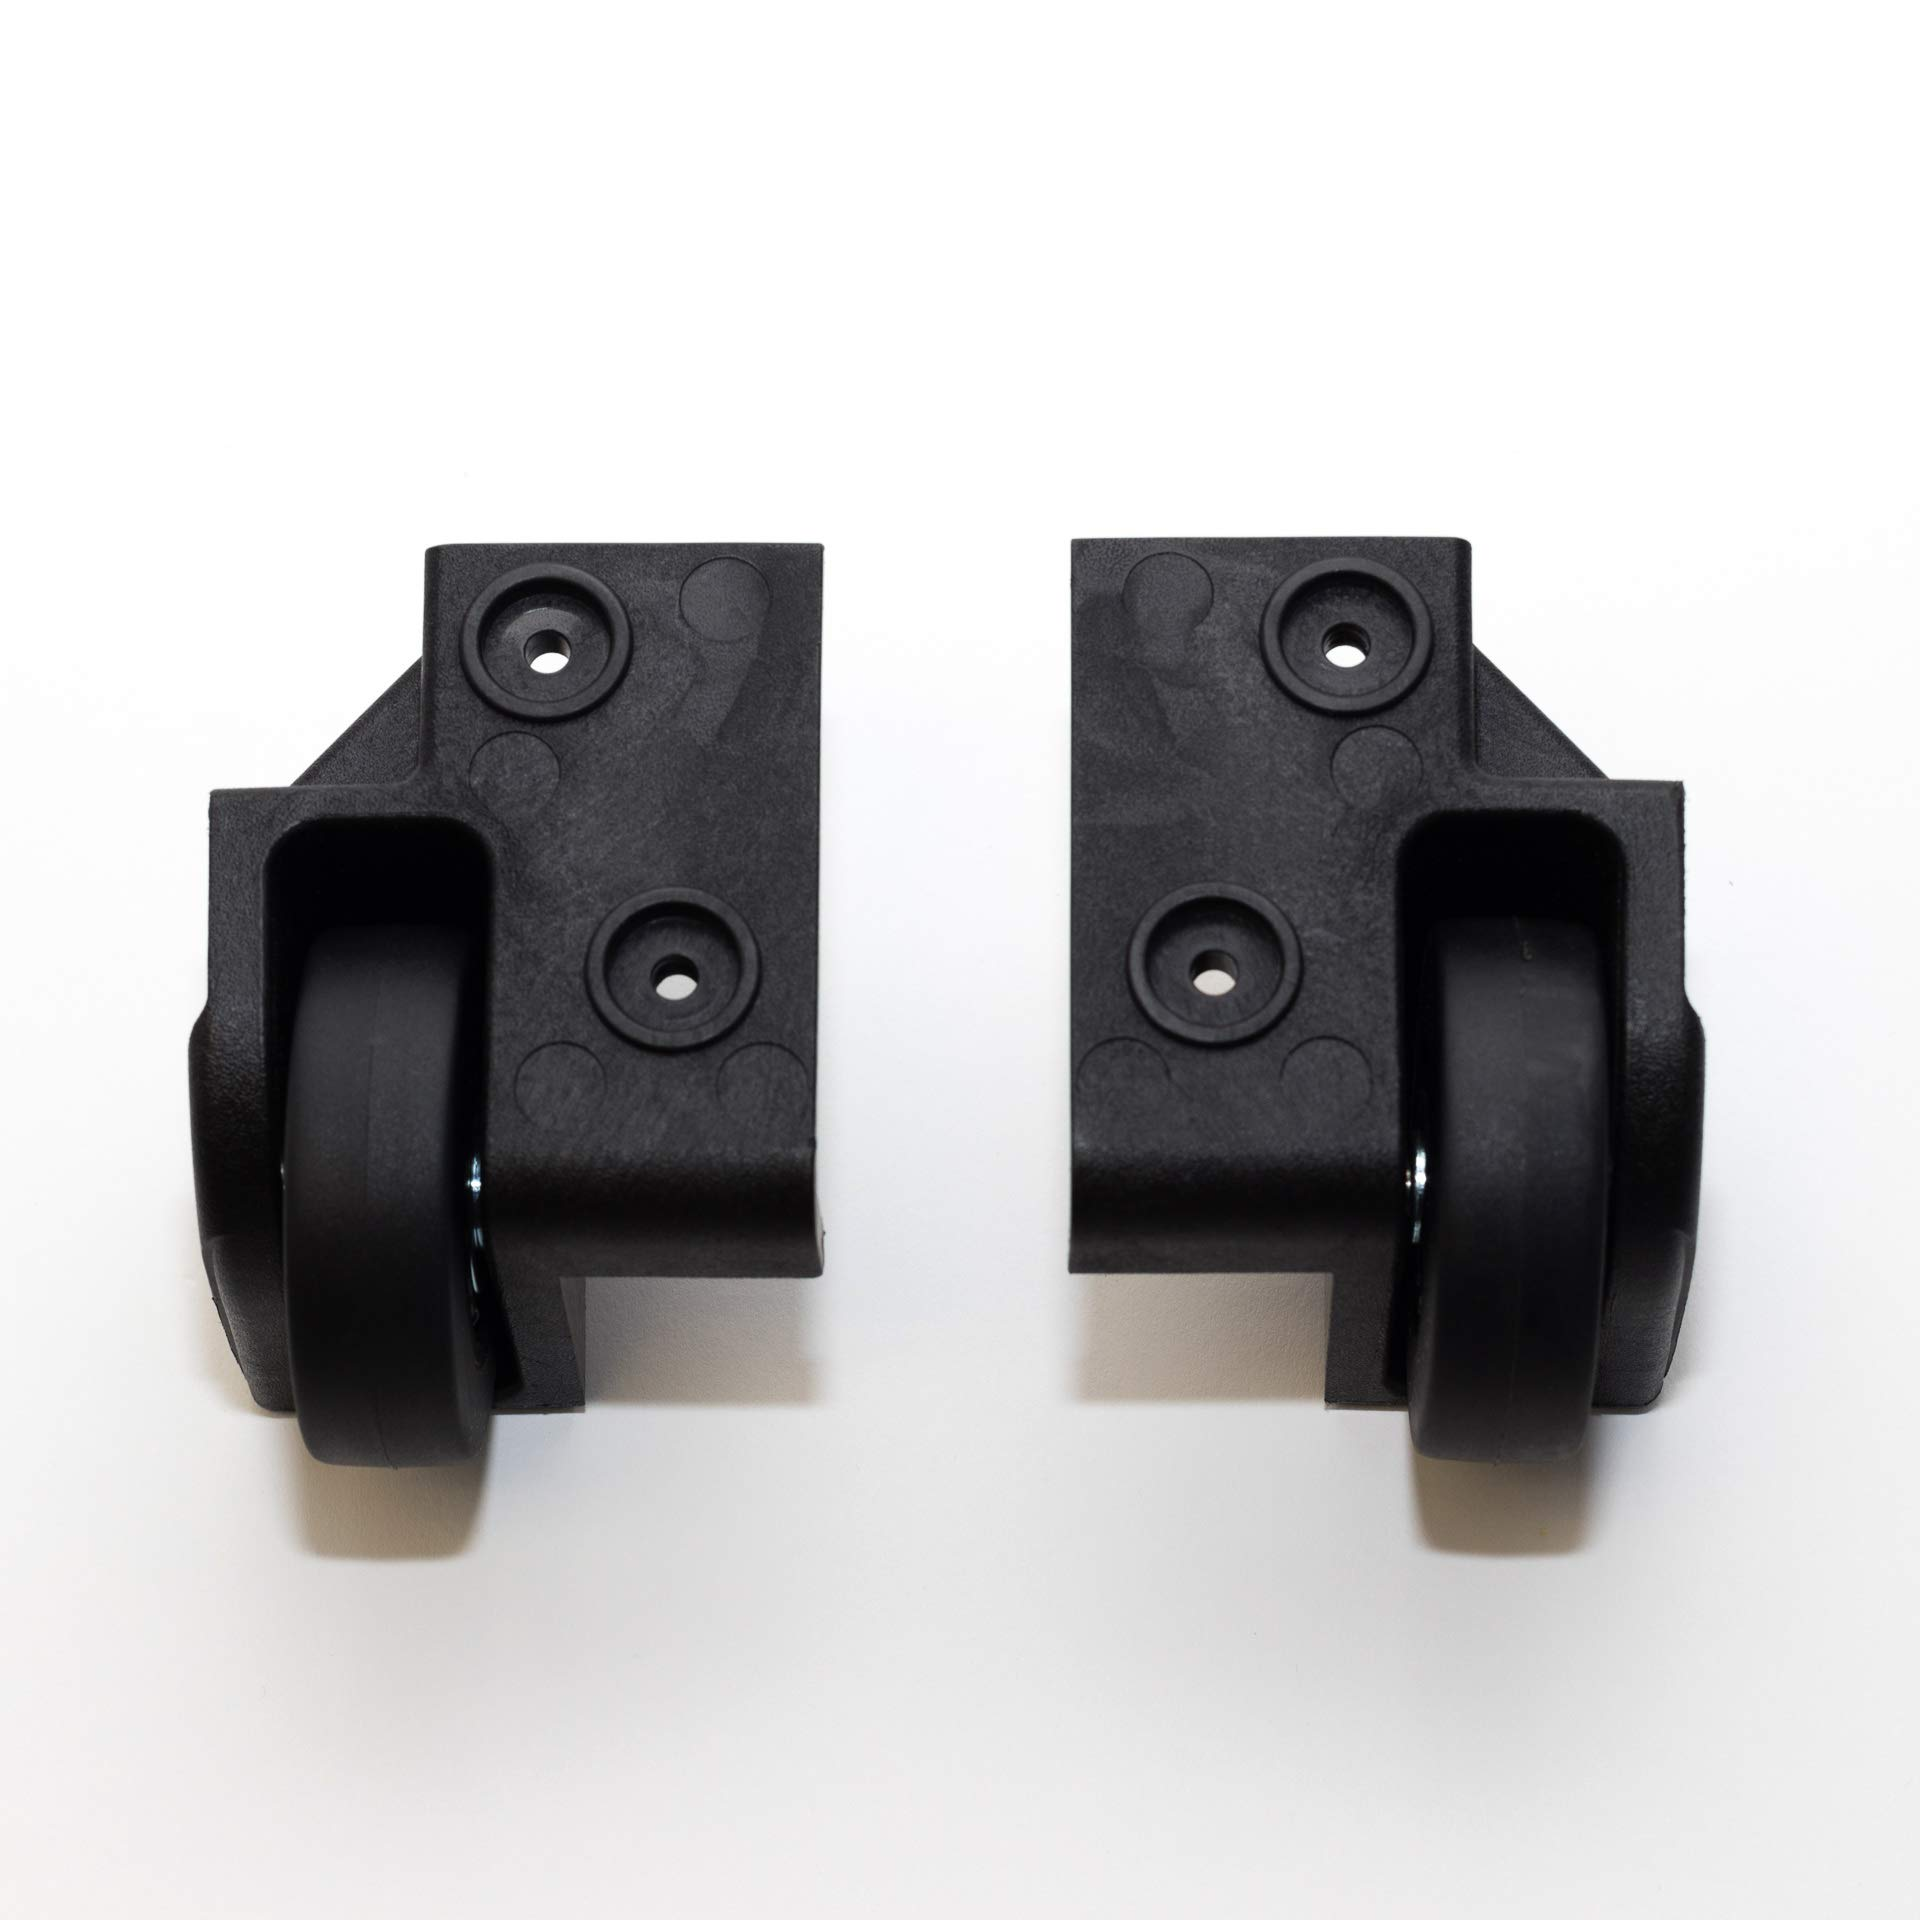 Pelican 1510/1560 Replacement Wheel housings(Left & Right) & 2 Wheels by Pelican